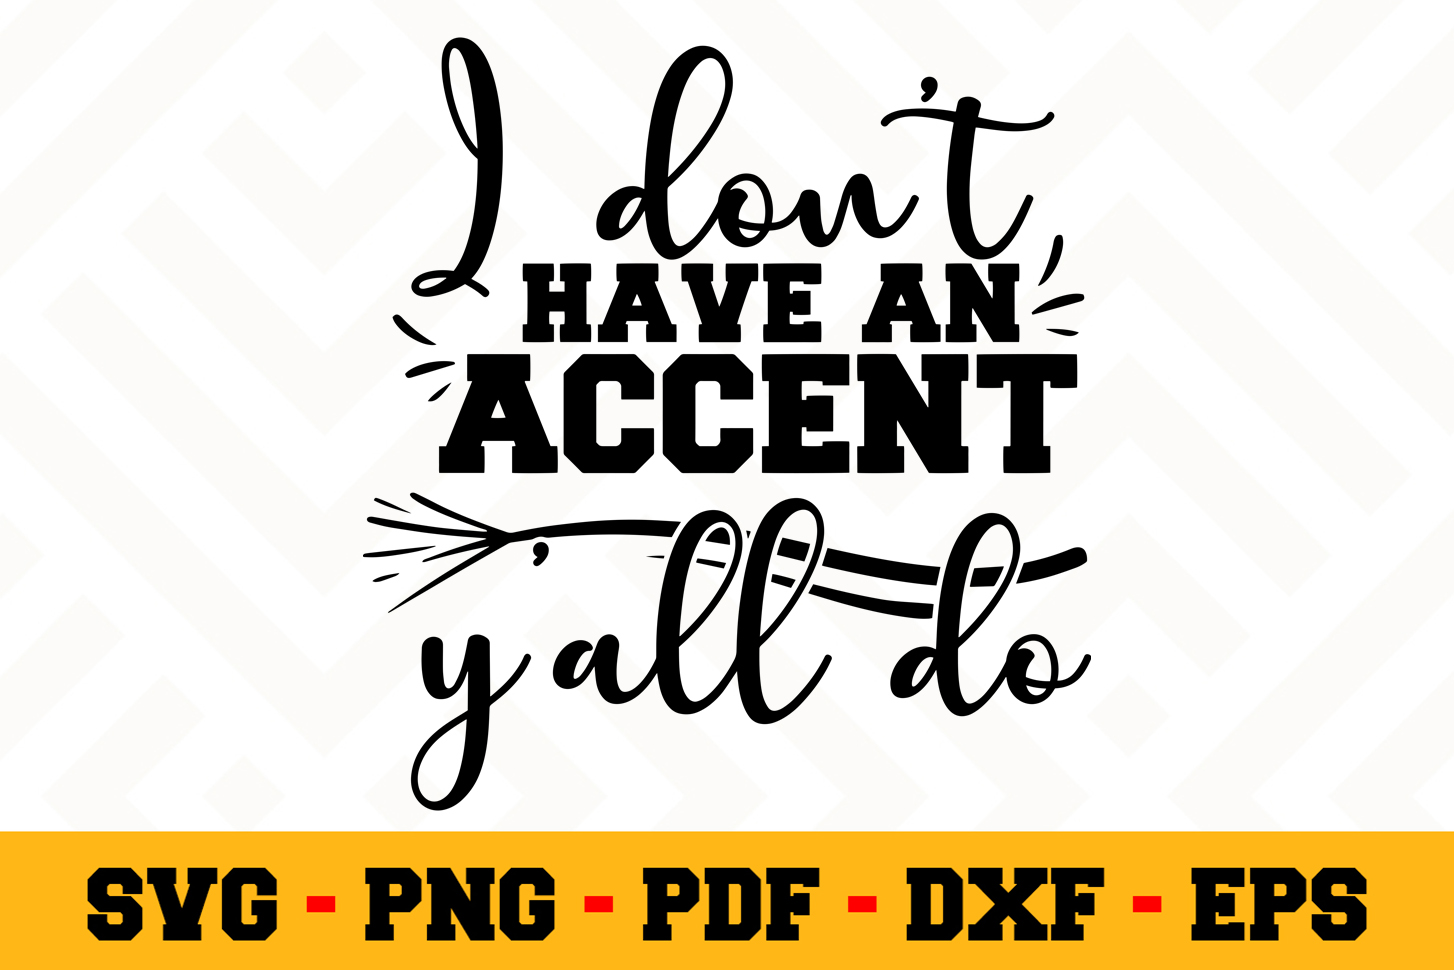 Southern SVG Design n655 | Southern SVG Cut File example image 1